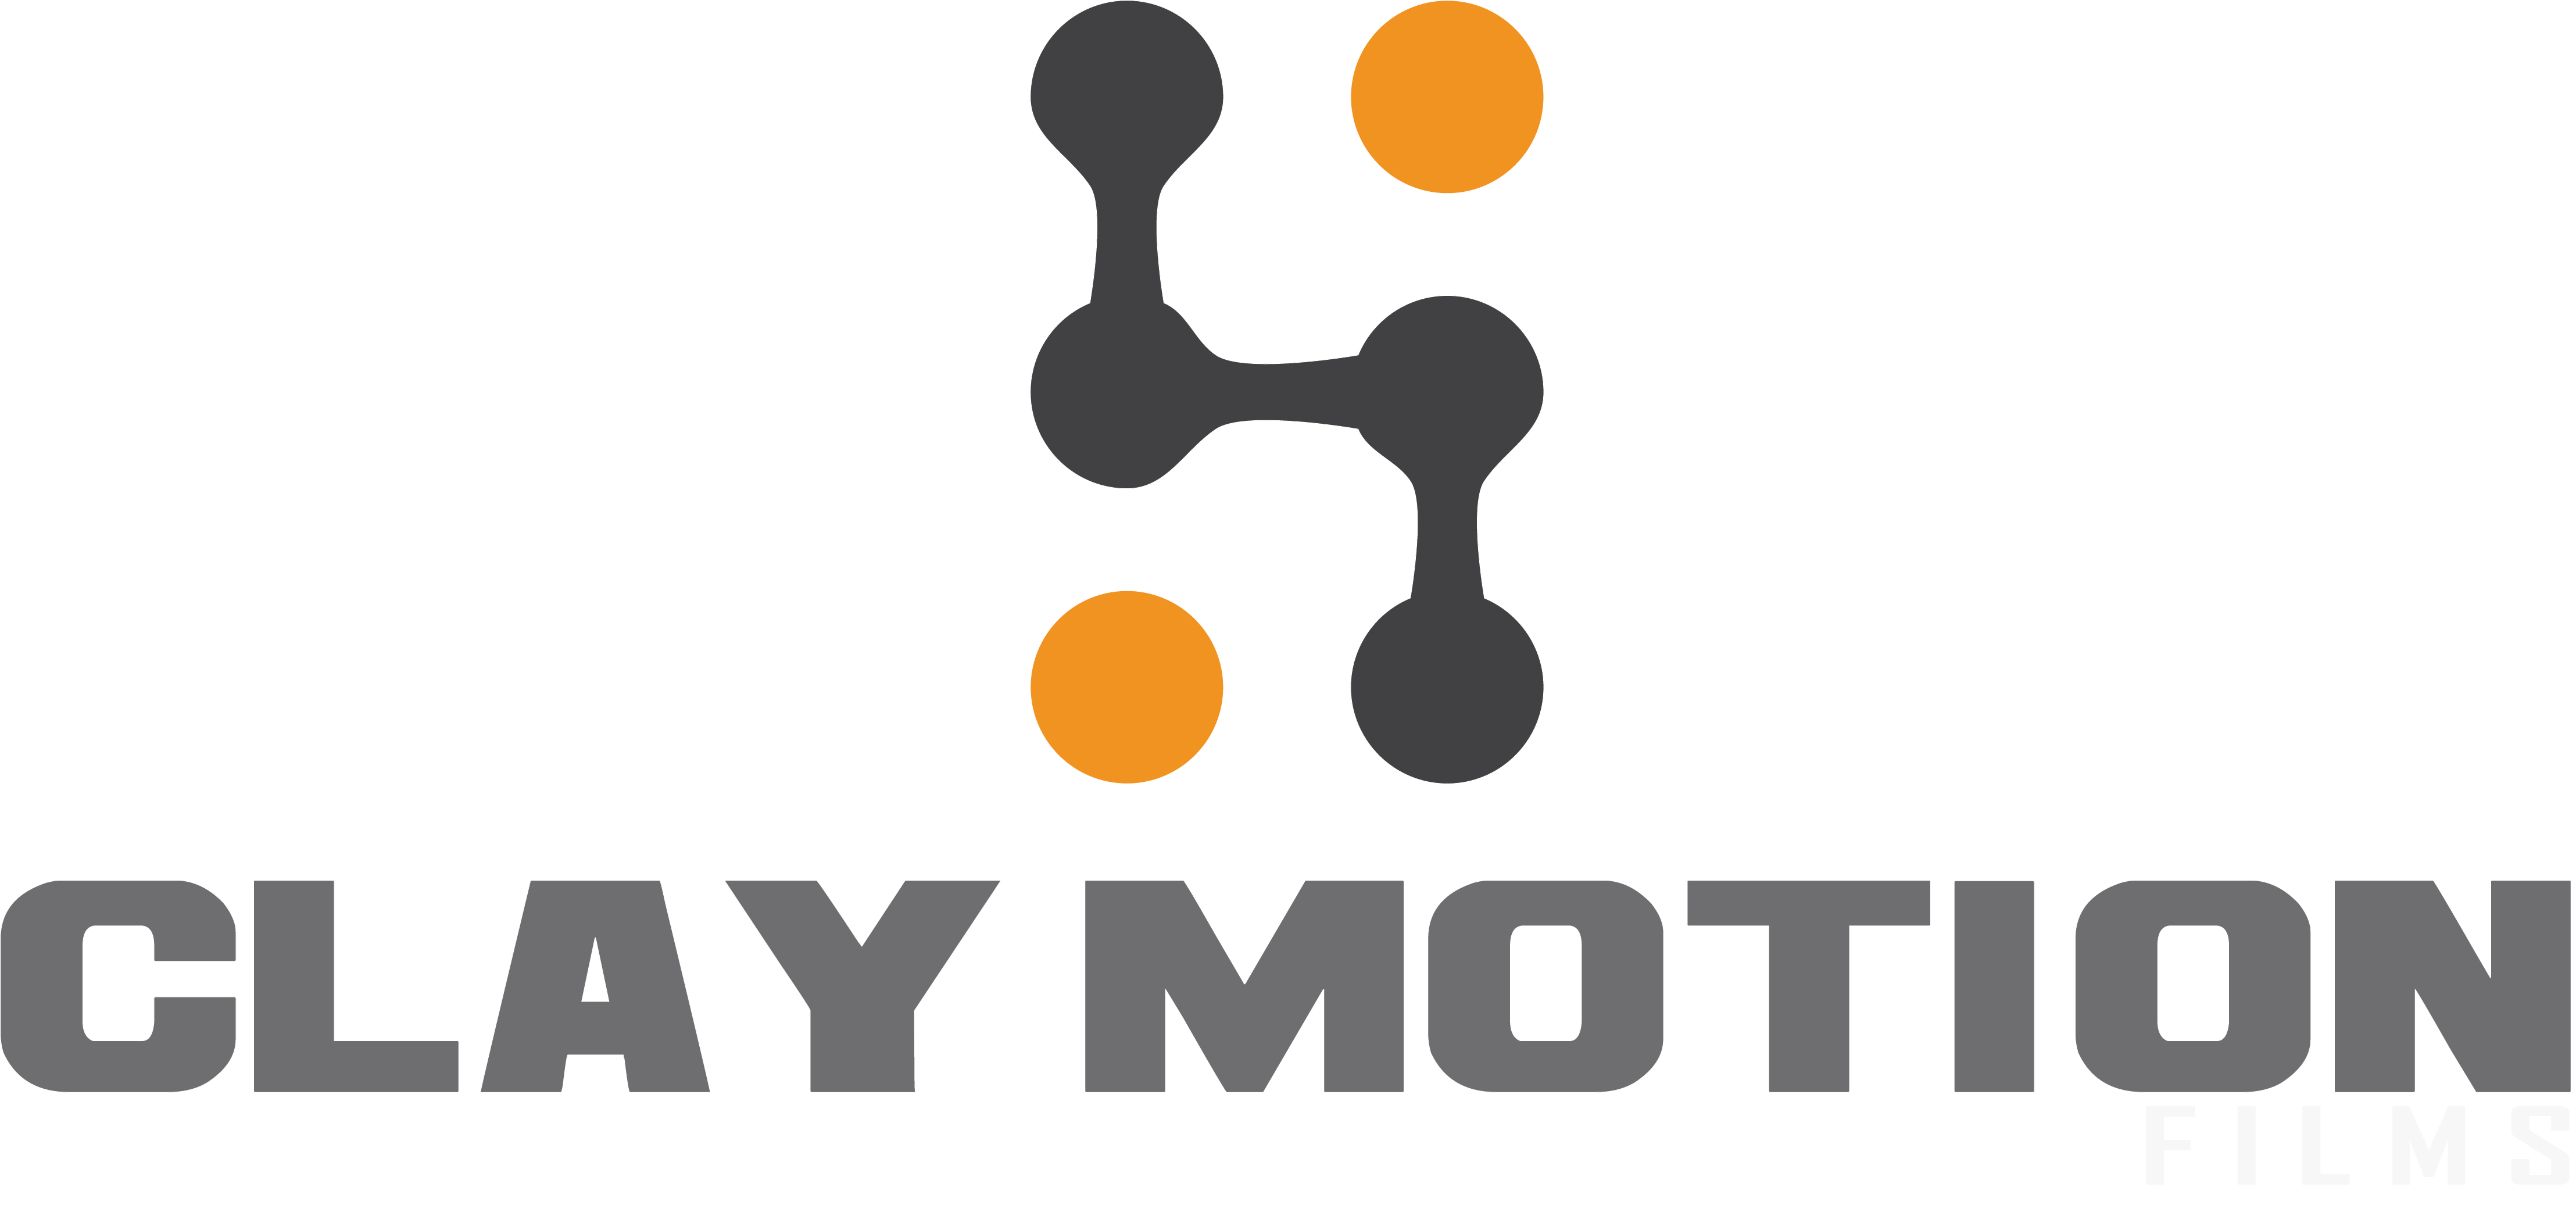 CLAY MOTION